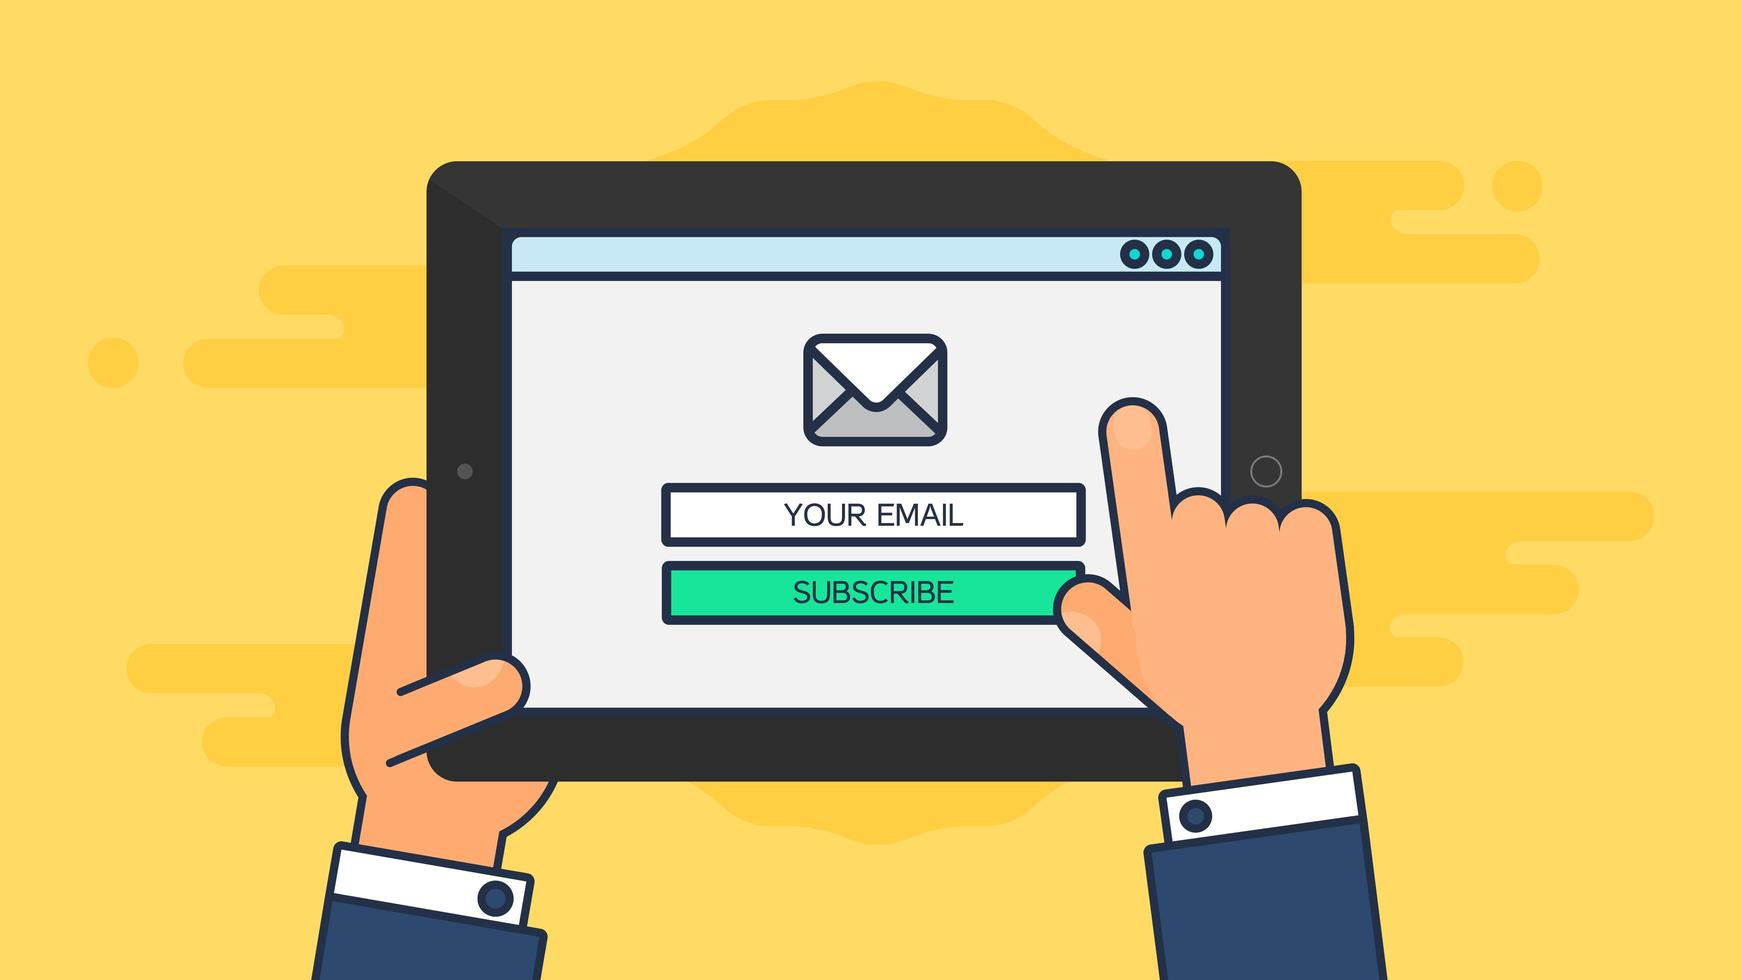 Web Template of Tablet Email Form vector